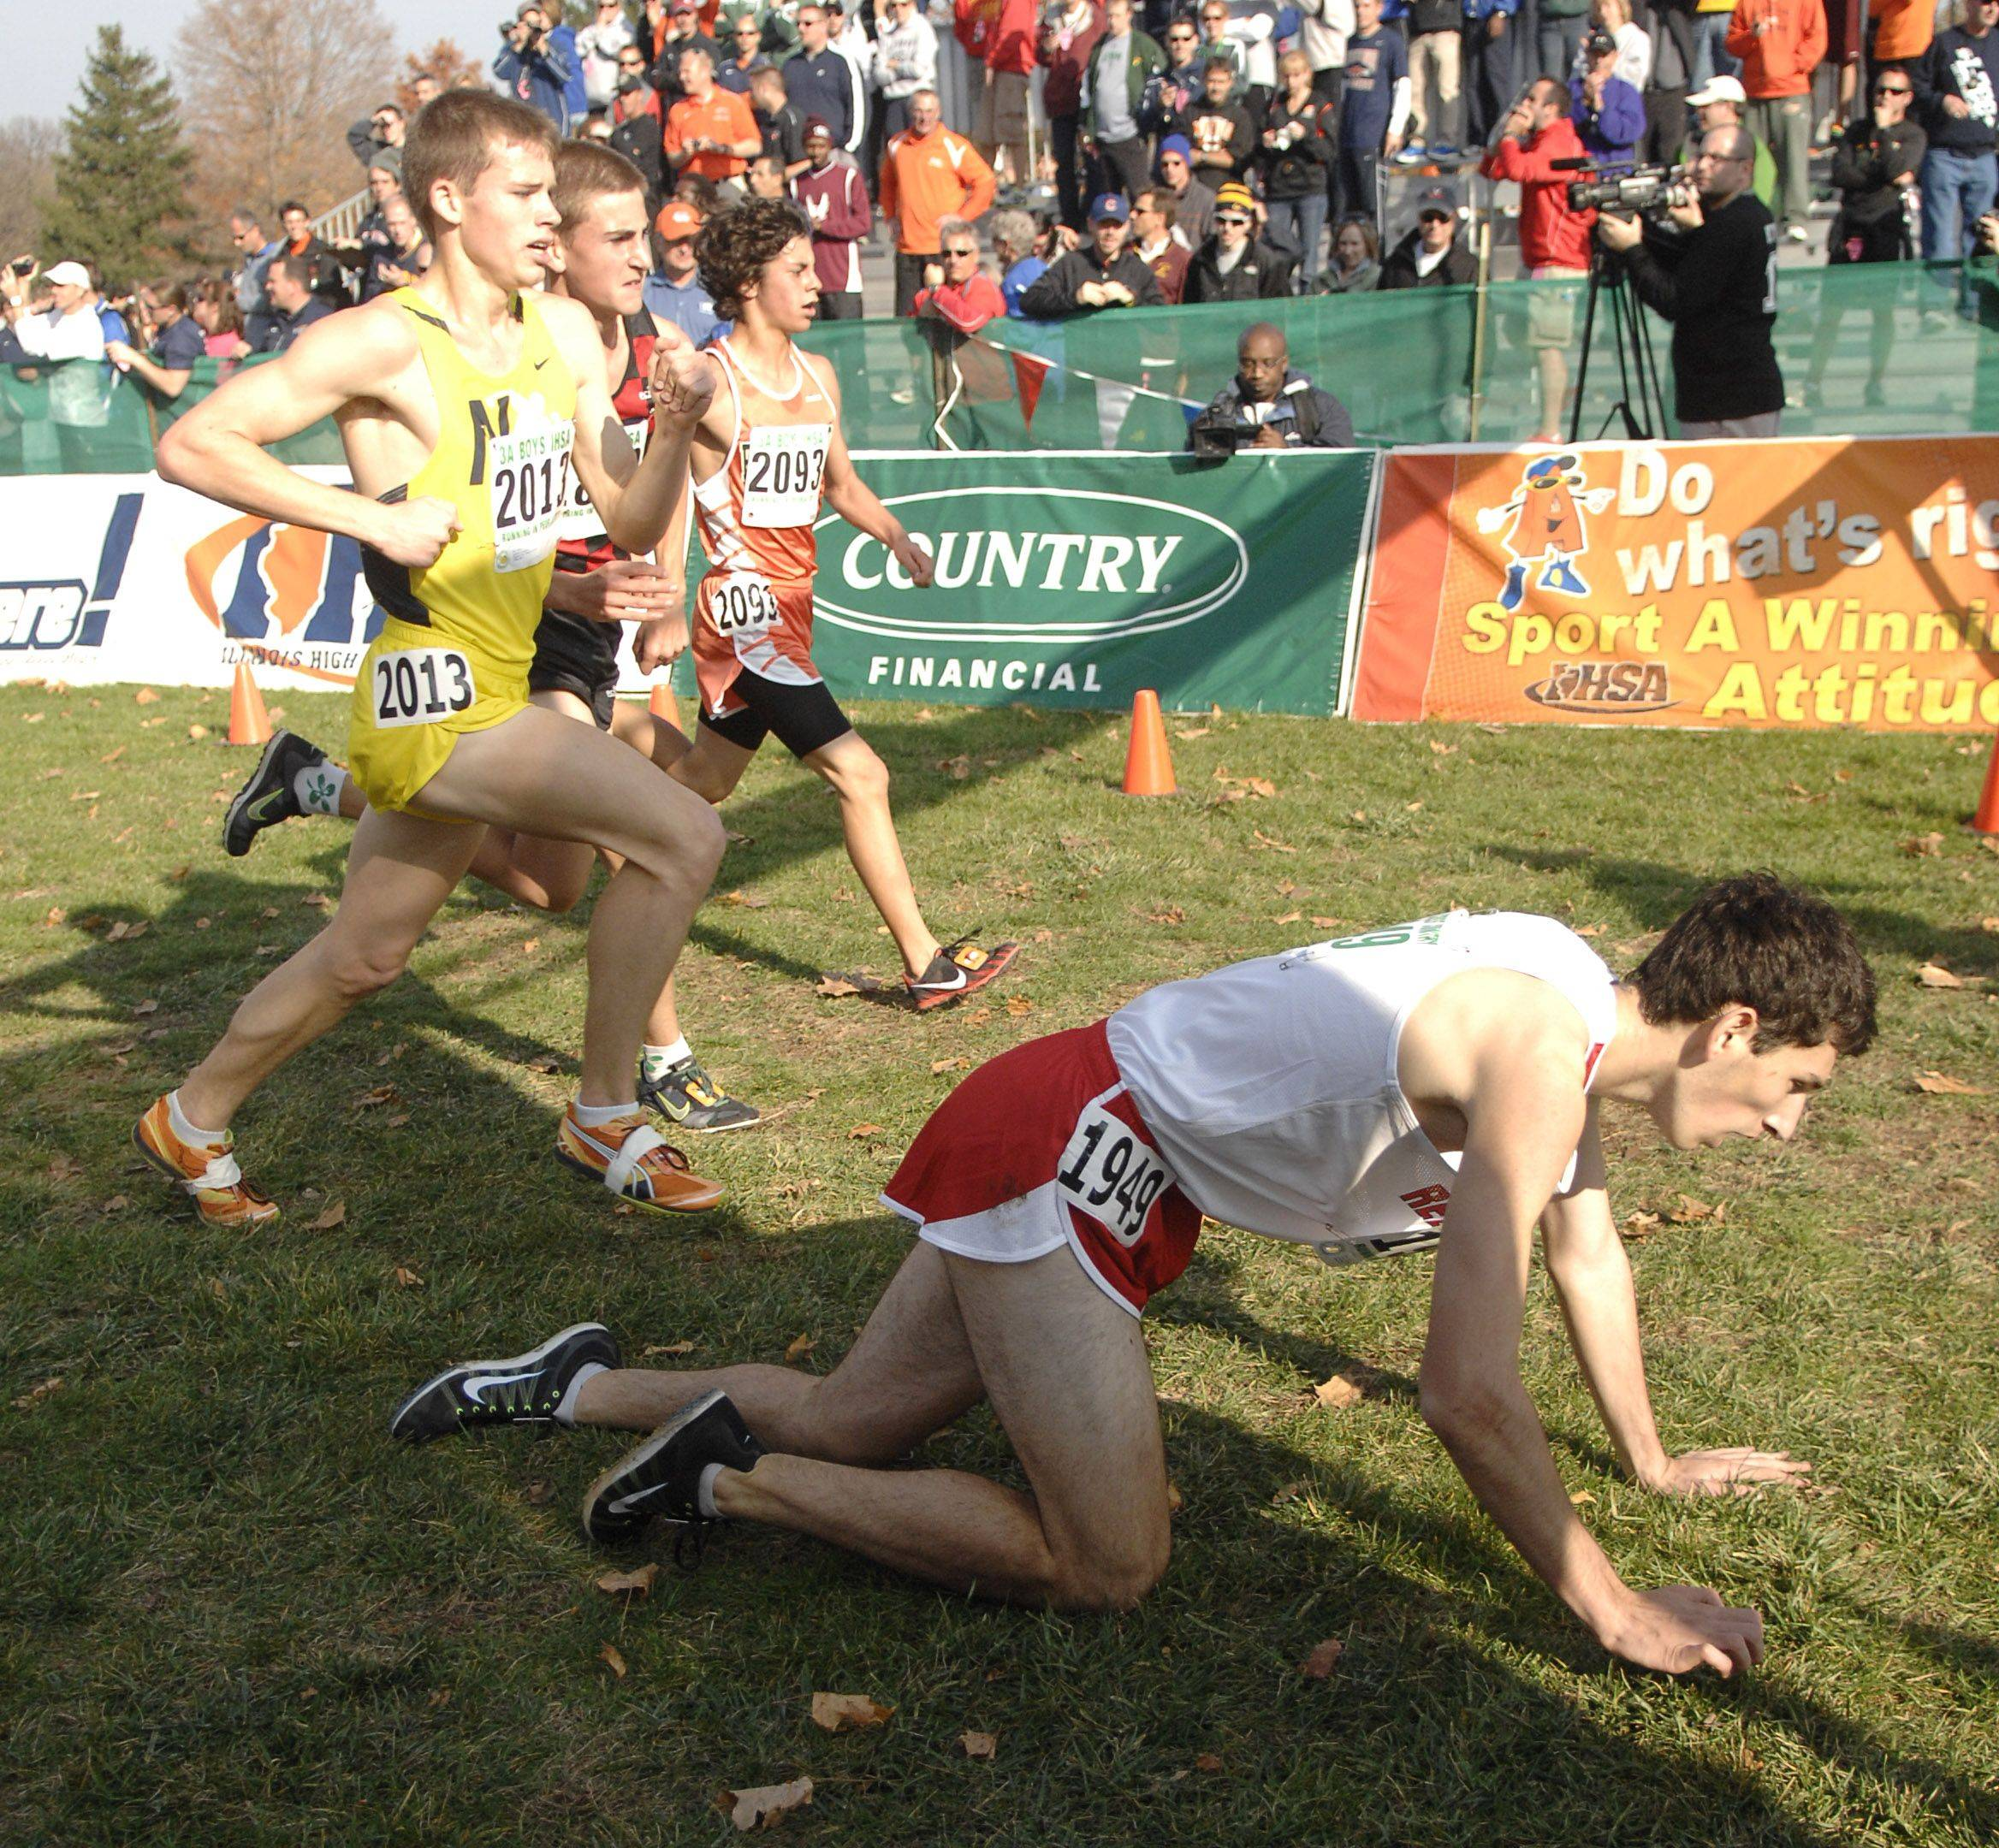 Hinsdale Central's Jack Feldman crawls across the finish line in the 3A state cross country final in Peoria on Saturday, November 5.